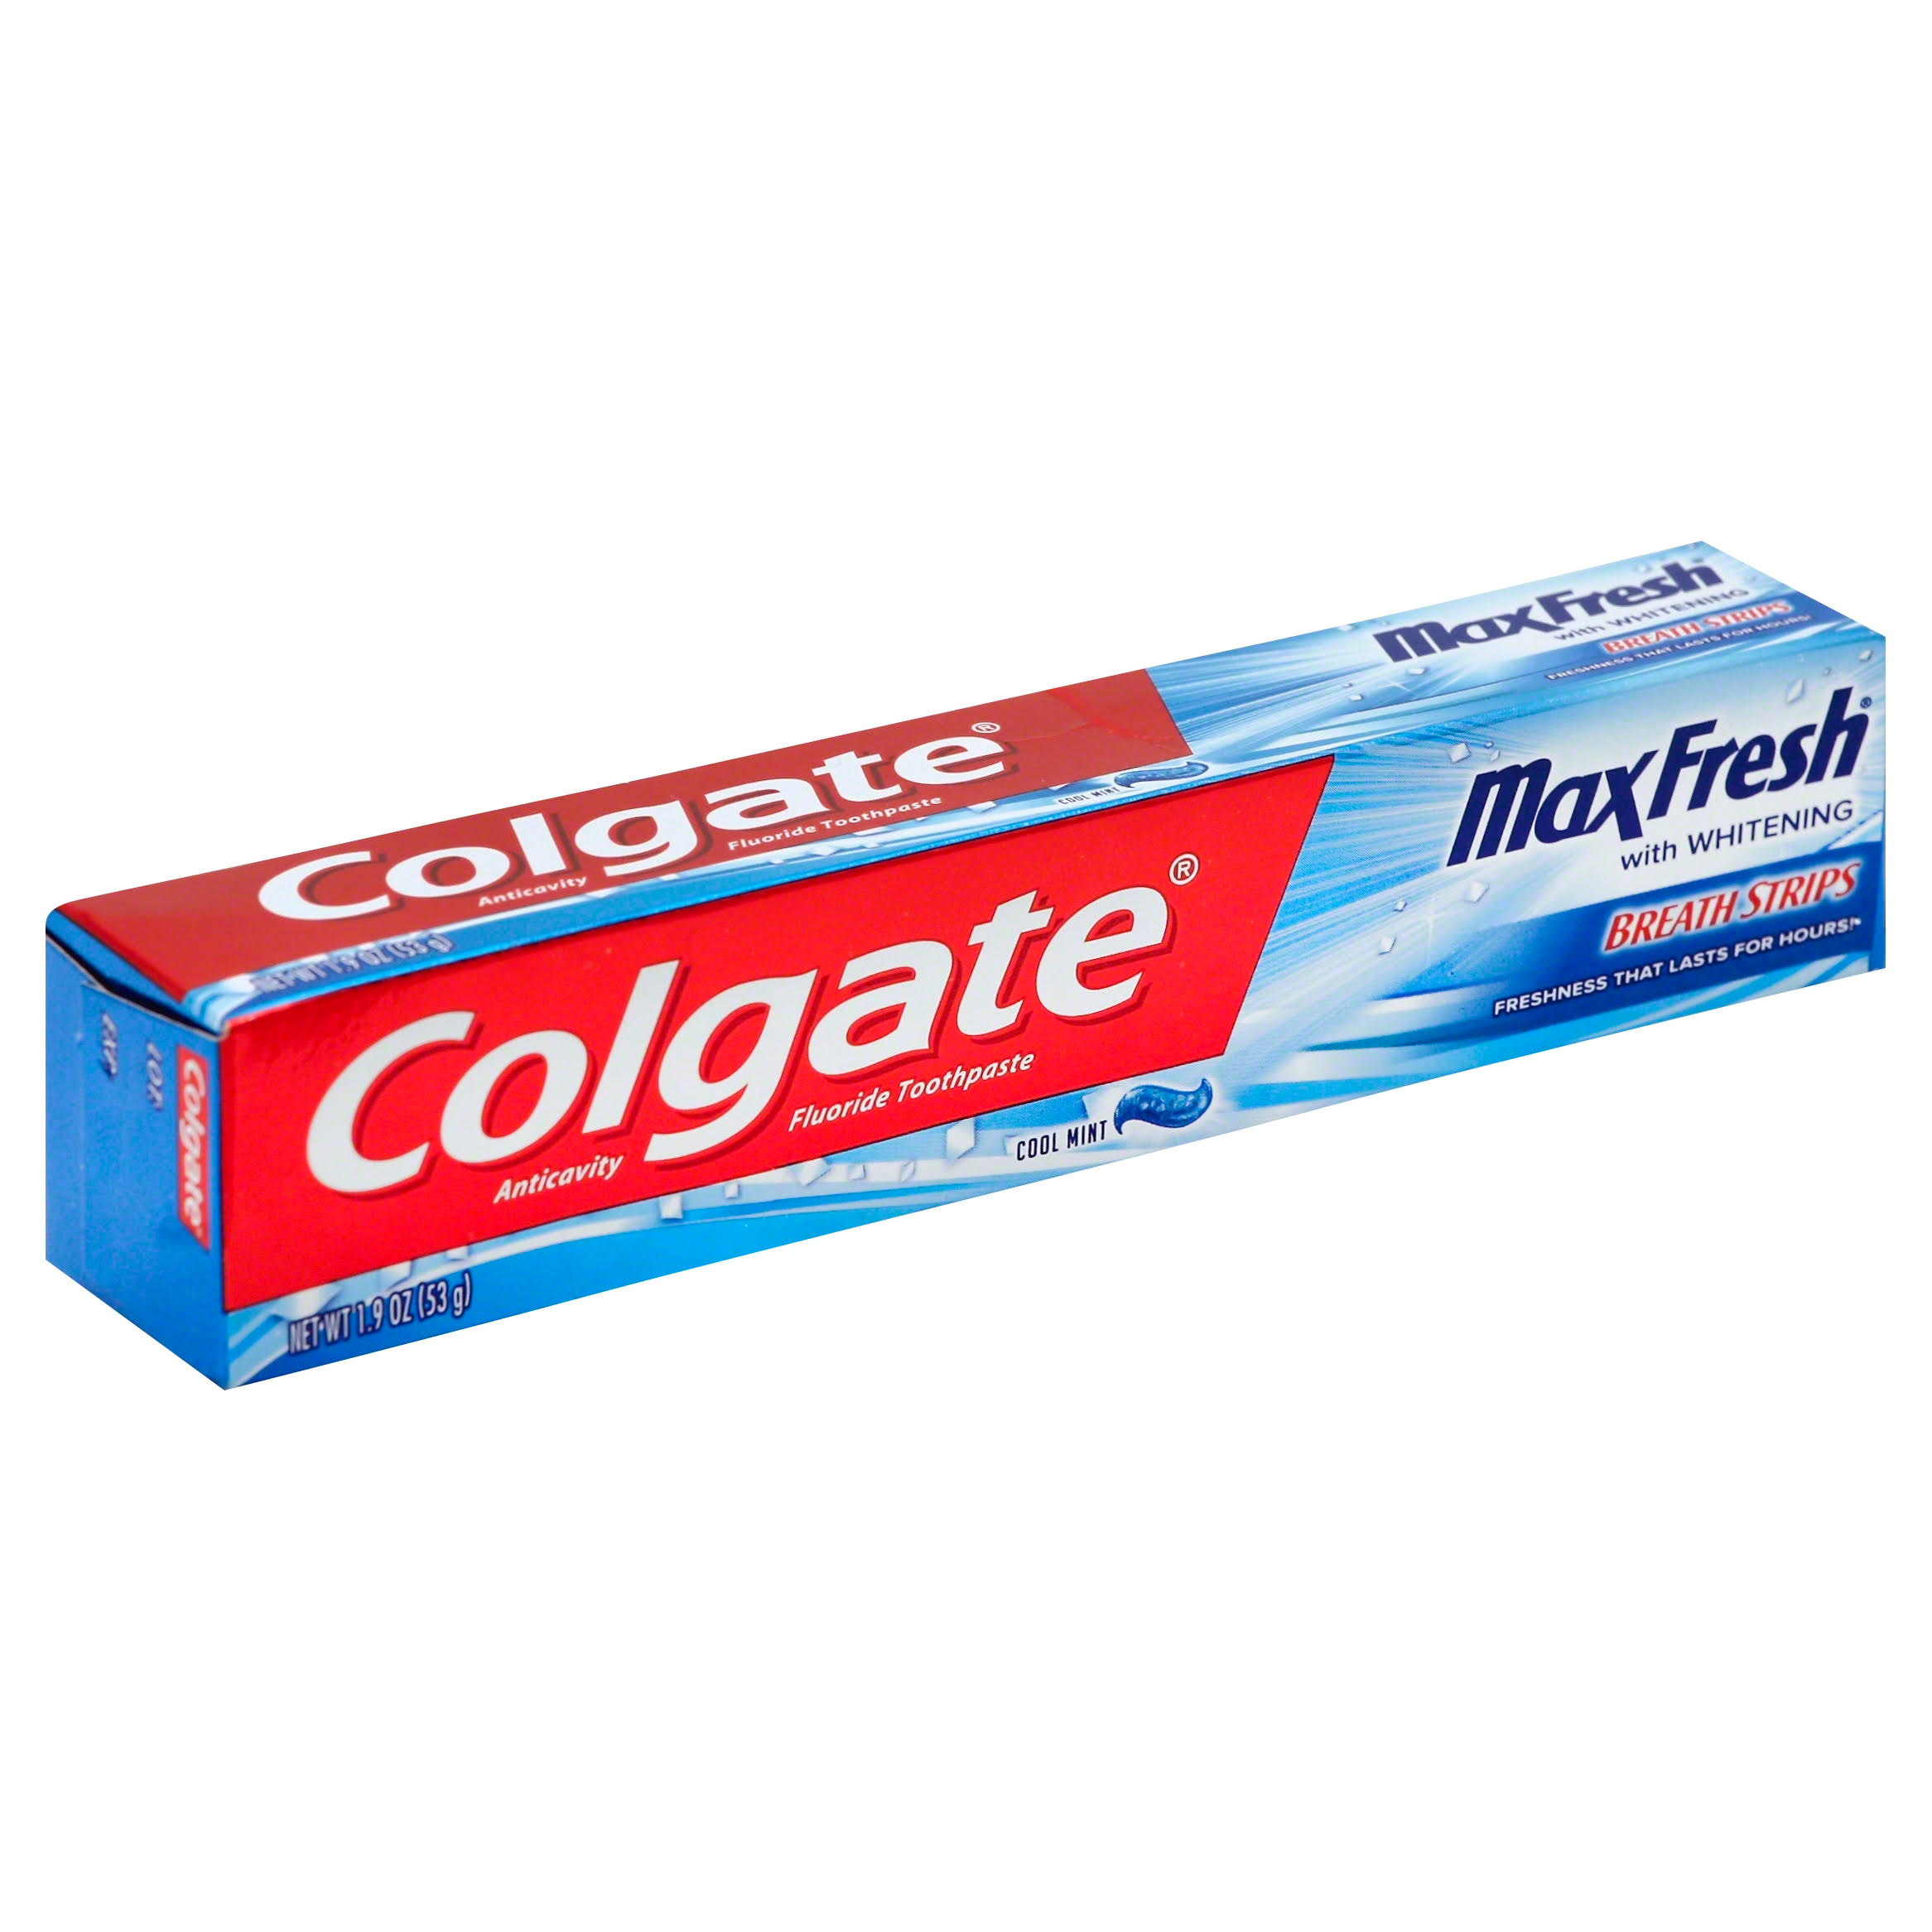 Colgate MaxFresh with Whitening Breath Strips Toothpaste - Cool Mint, 1.9oz